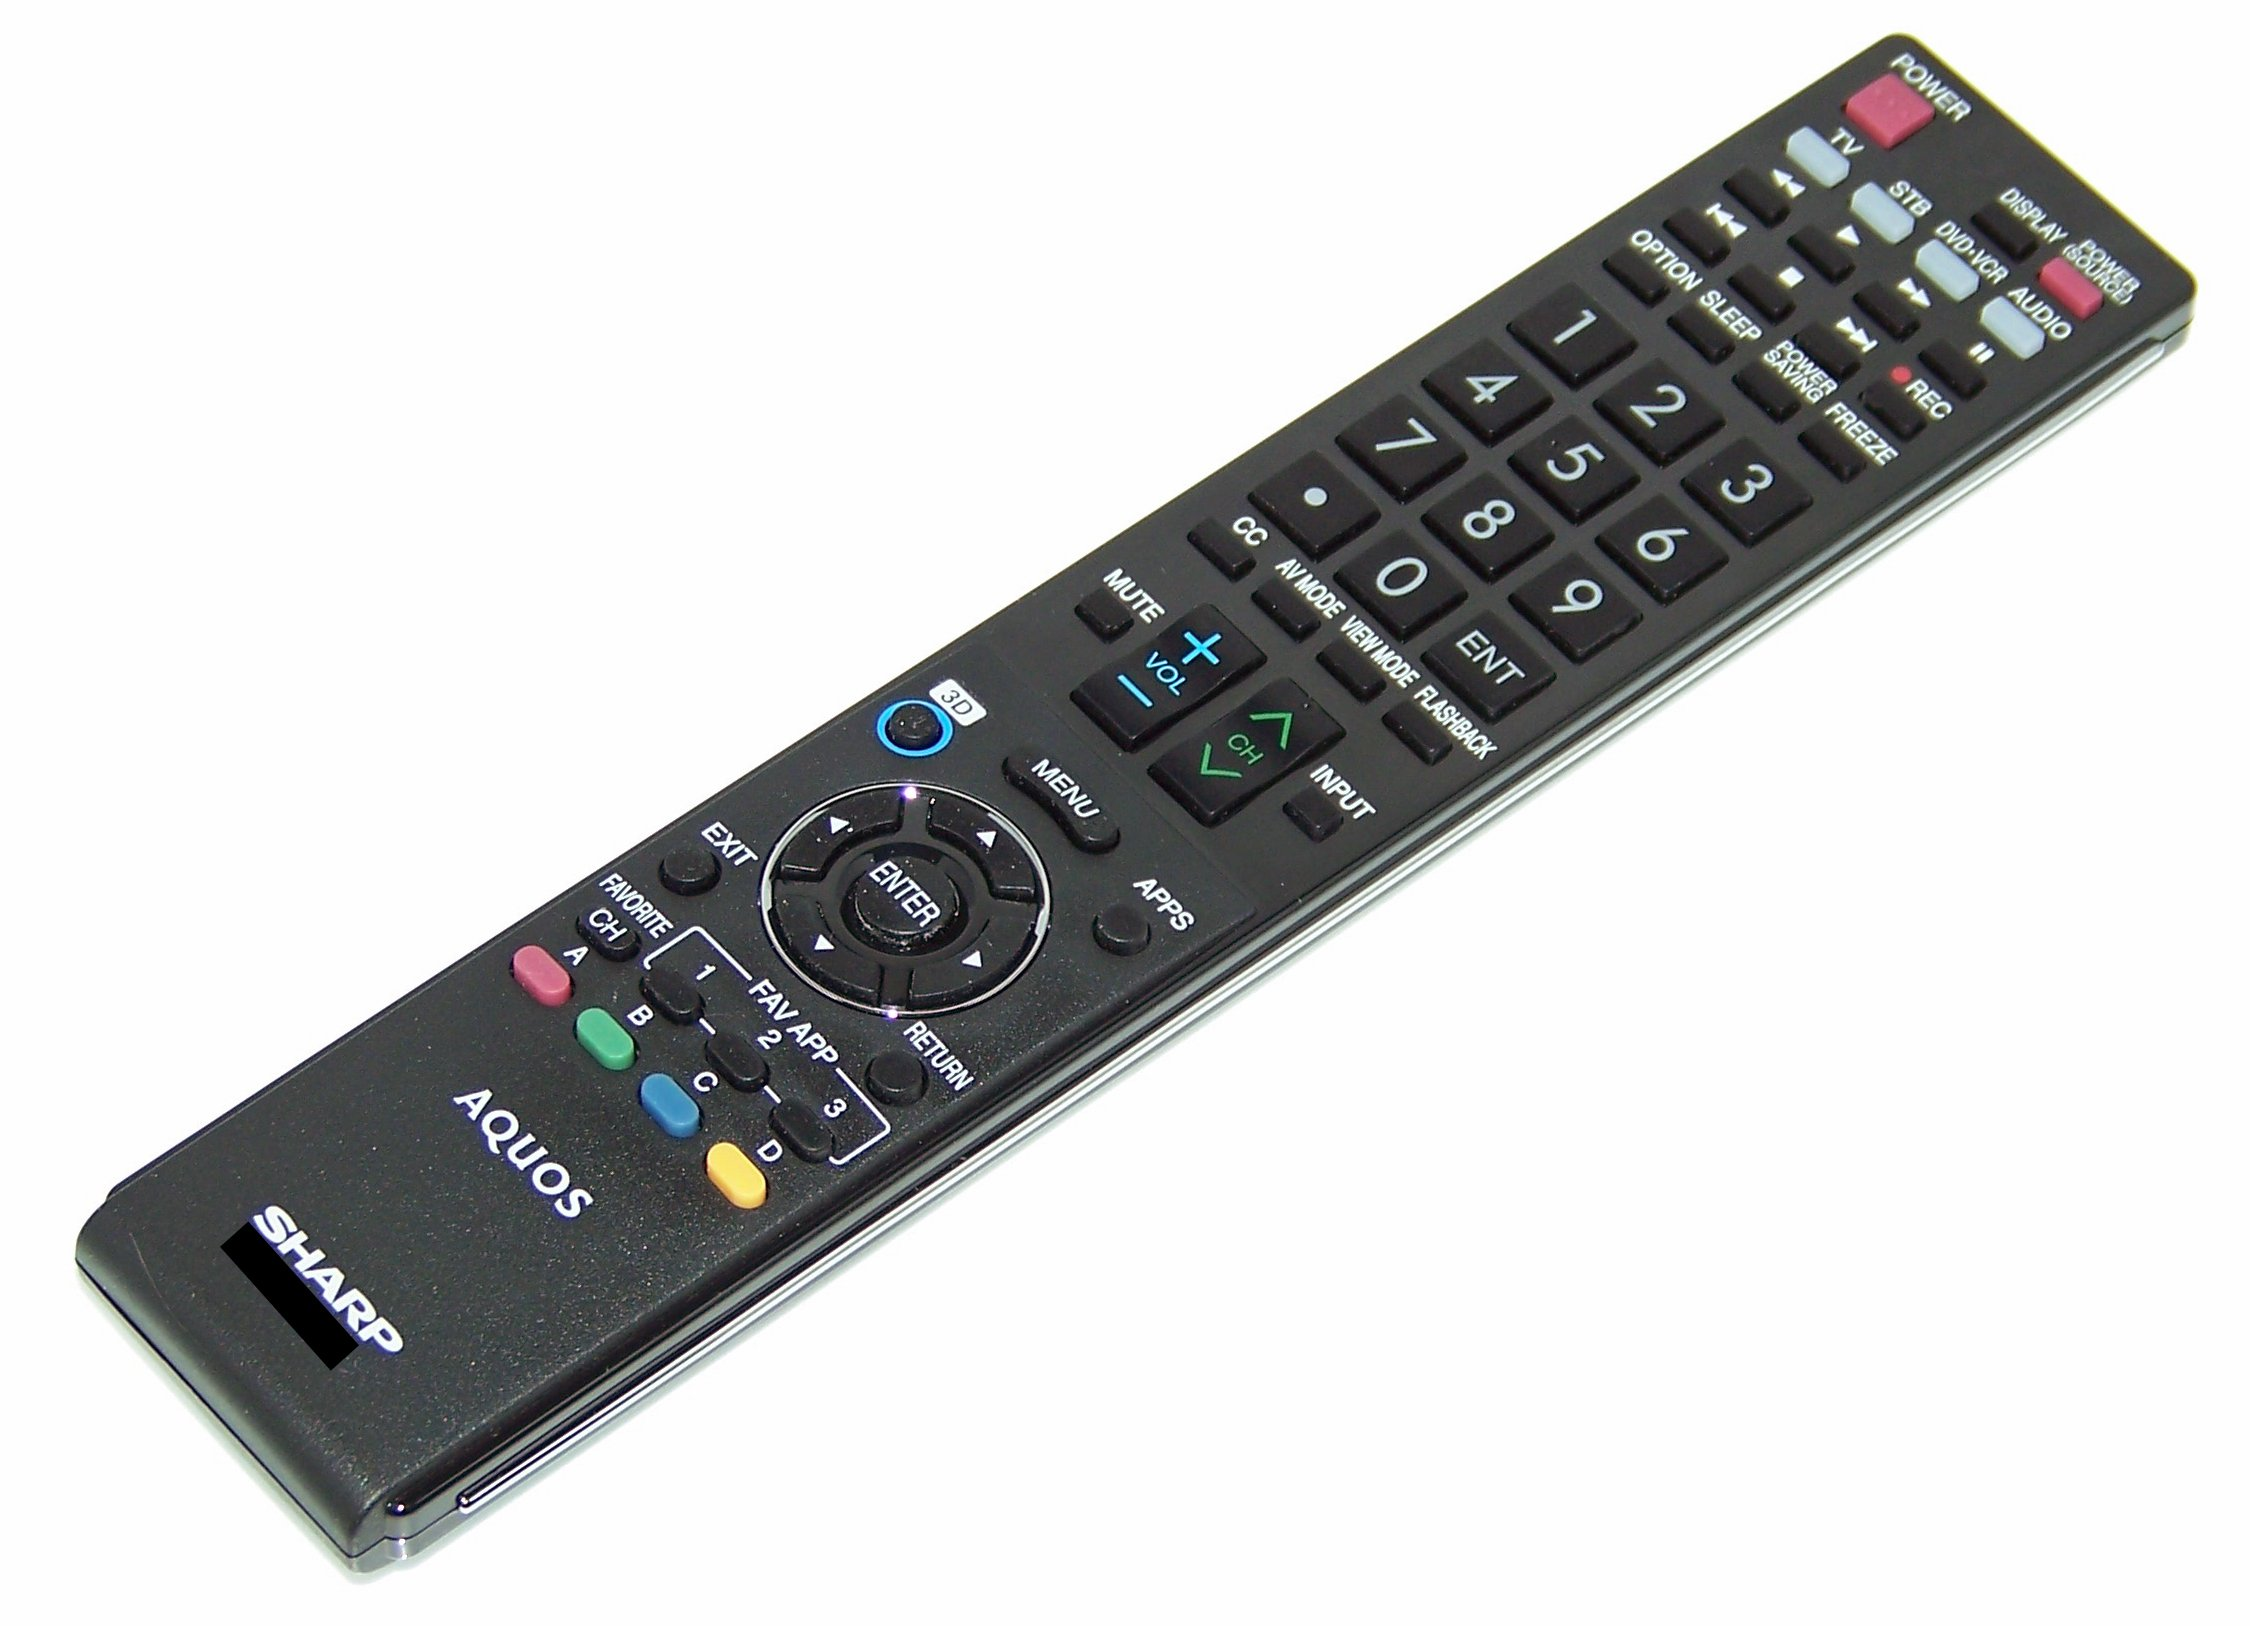 OEM Sharp Remote Control Specifically for: LC46LE810UN, LC-46LE810UN, LC46LE820UN, LC-46LE820UN, LC52LE810U, LC-52LE810U, LC52LE810UN, LC-52LE810UN by Sharp